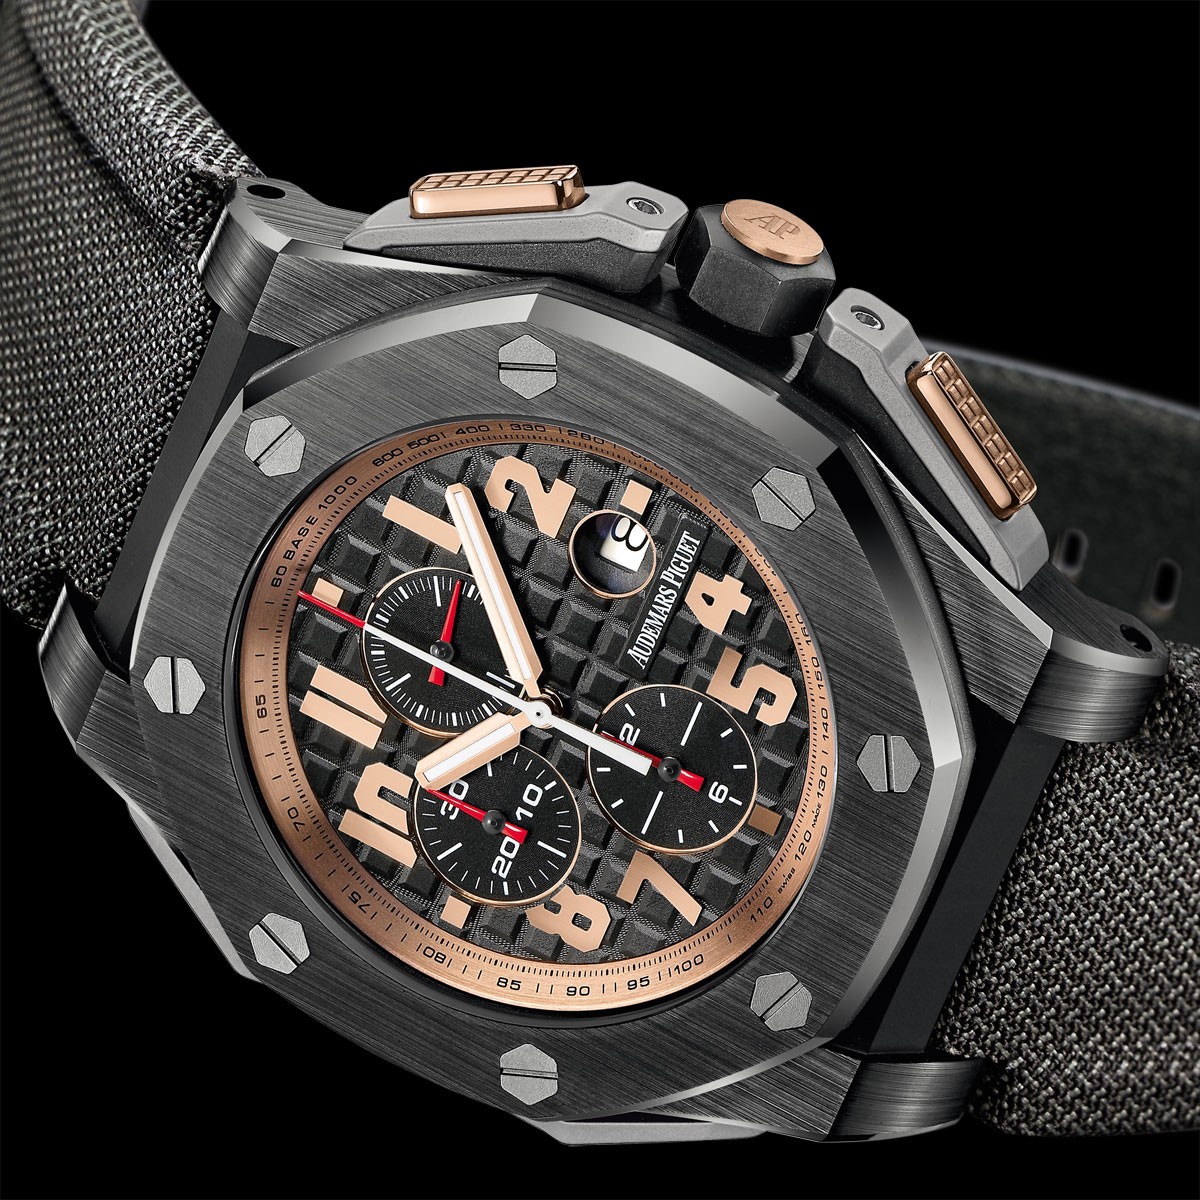 Audemars Piguet Royal Oak Offshore Arnold Replica Watches banner